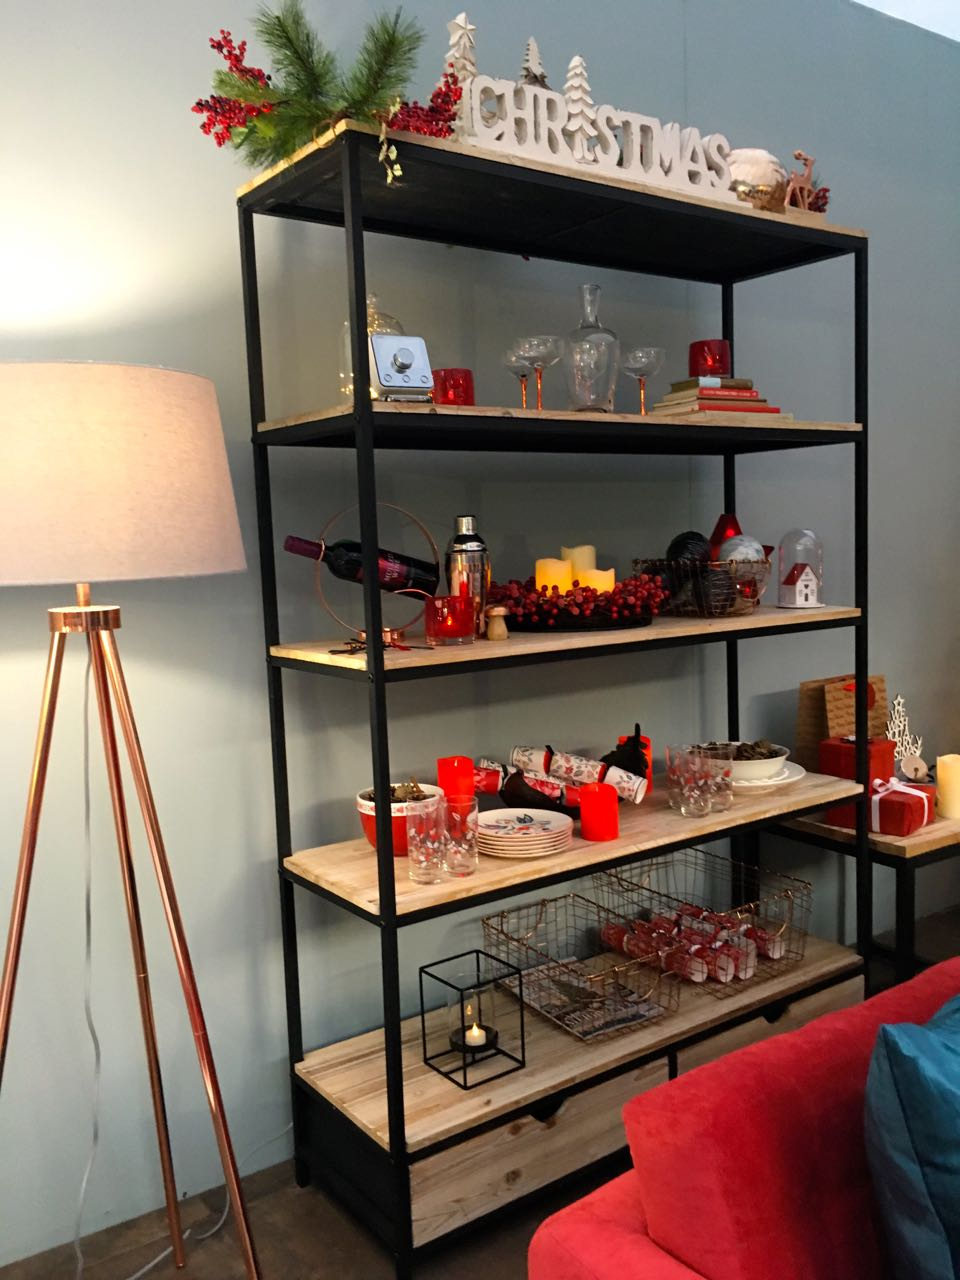 A matching open shelf unit and standard lamp  in this room set at the Ideal Home Show at Christmas